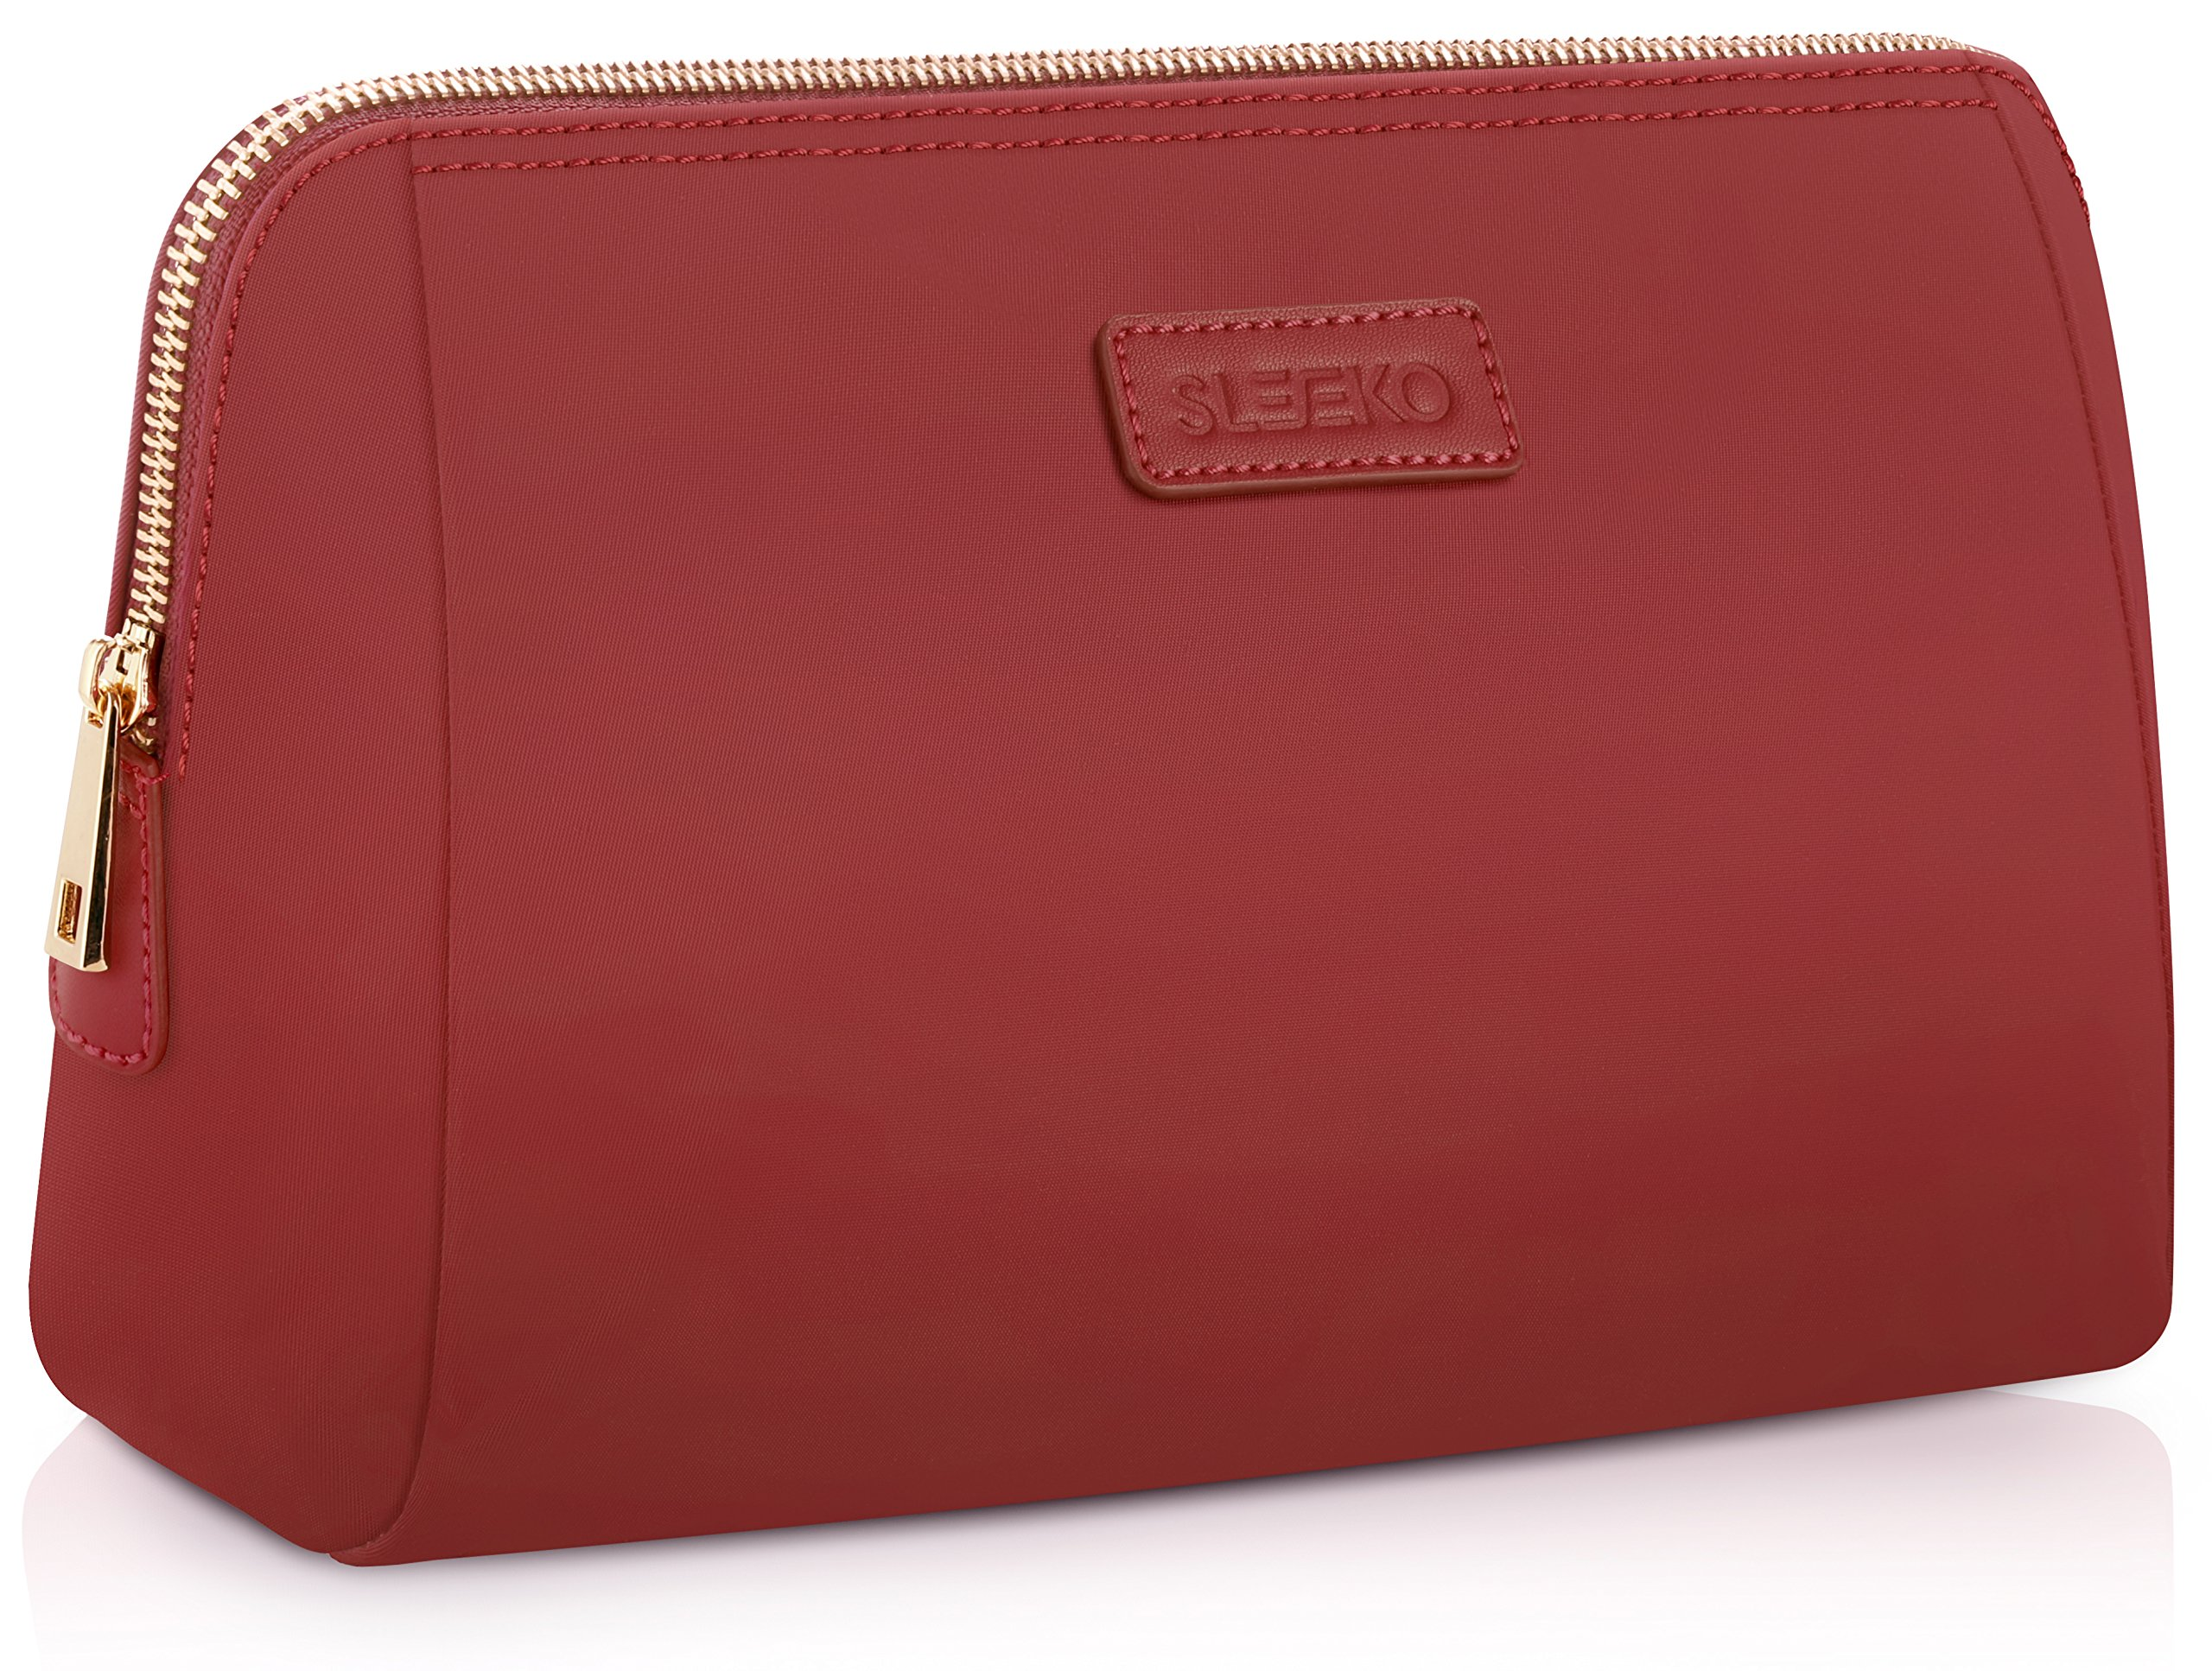 ed4834db2838 Amazon Prime. Free Shipping Free Shipping · Home   Beauty and Personal Care    Large Cosmetic Makeup Bag Pouch Clutch Travel Case Organizer Storage ...